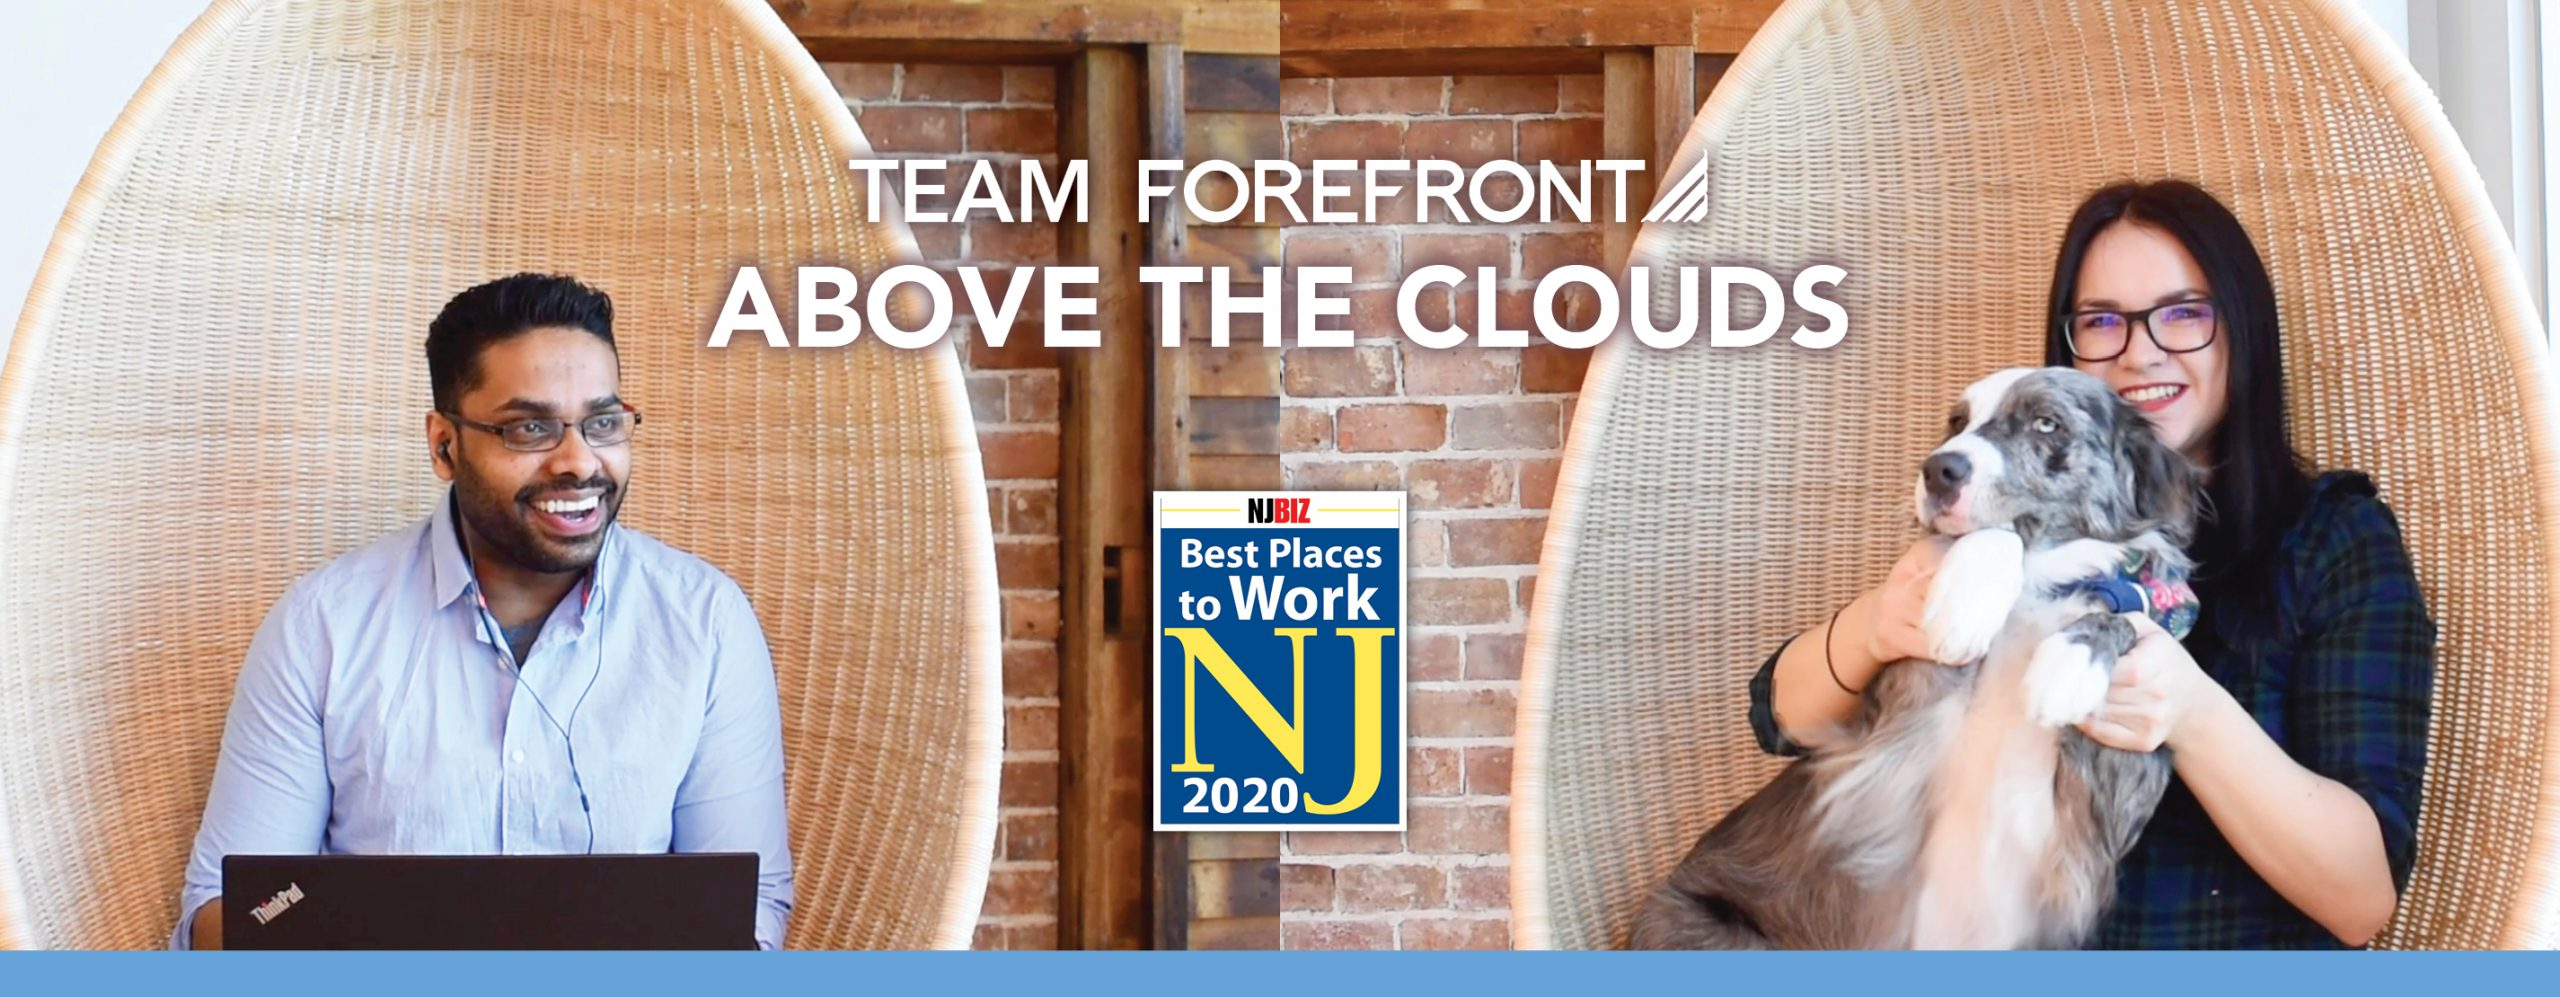 Team ForeFront | Above the Clouds | NJ Best Places to Work